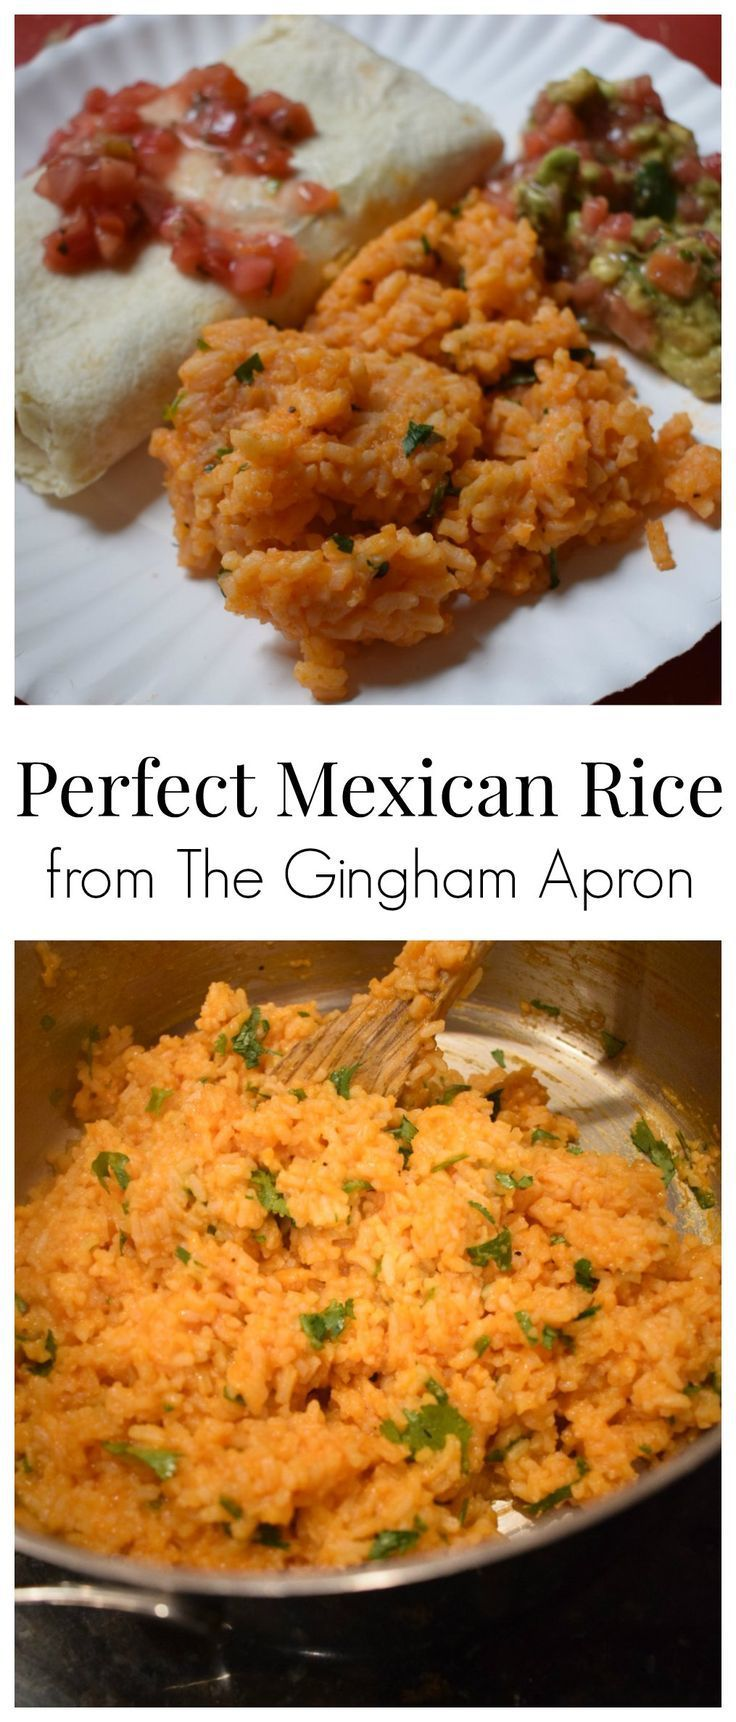 Make Perfect Mexican Rice at home! Tastes just like the delicious rice you order at your favorite Mexican restaurant. #mexican #mexicanfood #cincodemayo